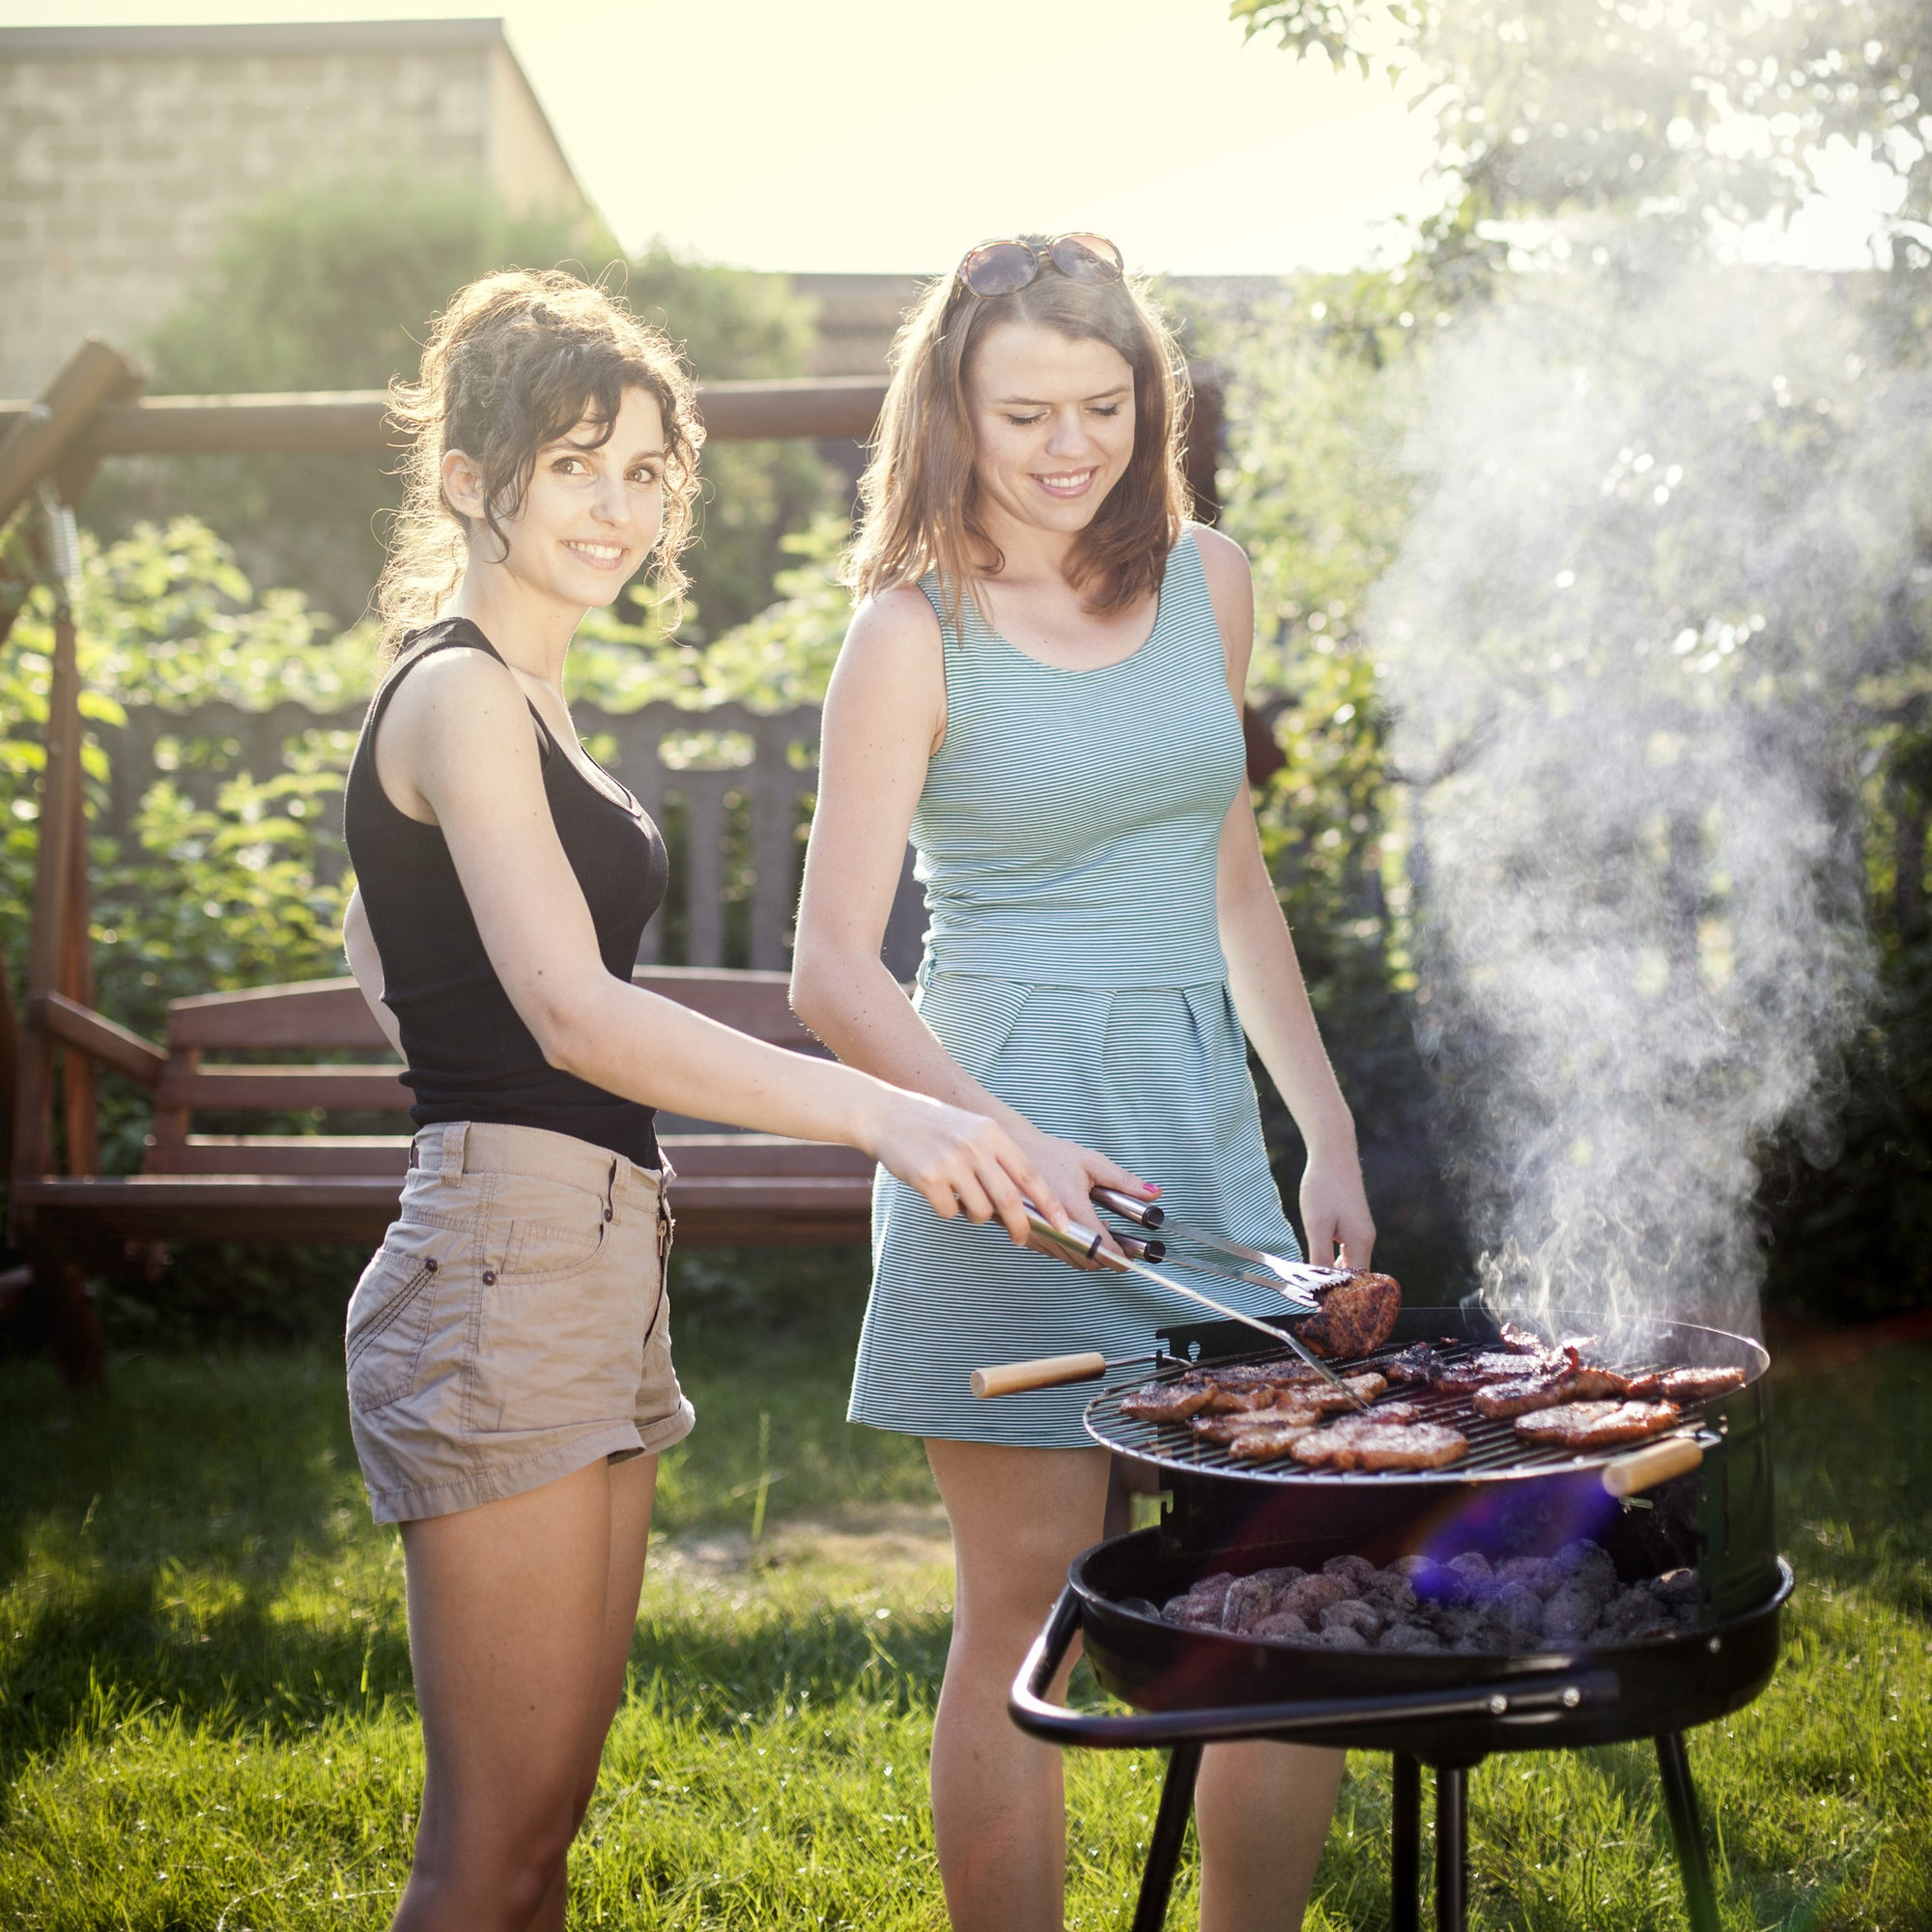 5 Healthy Picks to Liven Up Your BBQ!